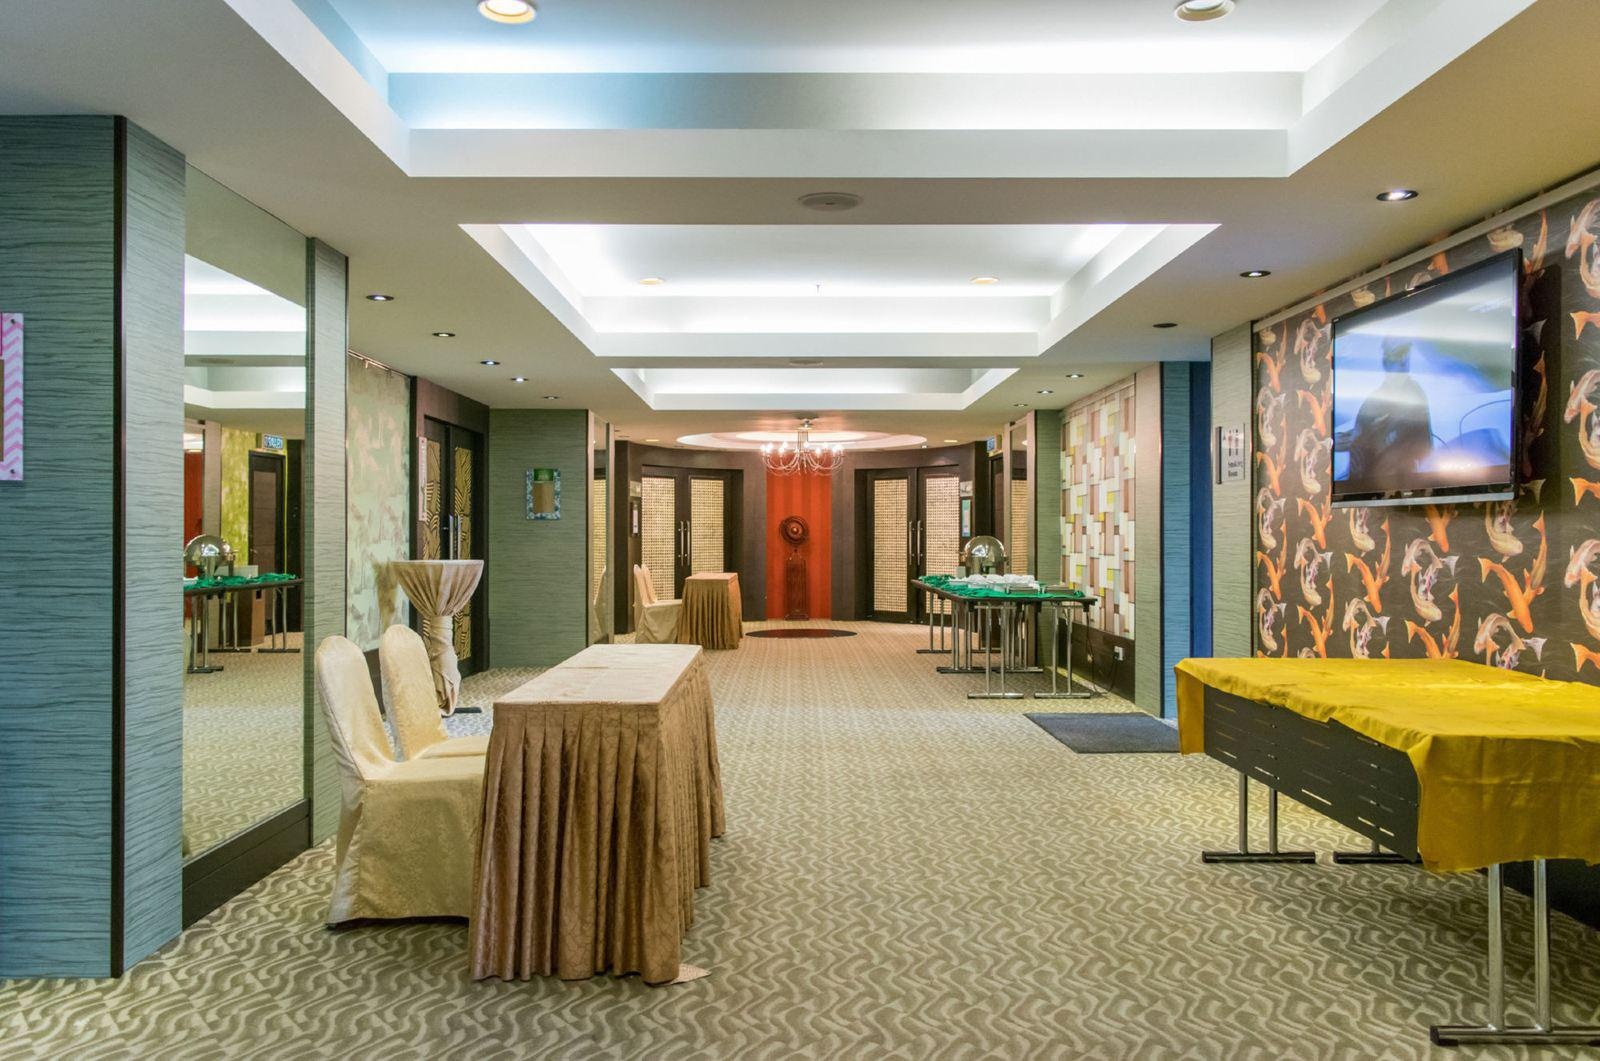 MH Hotel Ipoh, Ipoh Hotels - Skyscanner